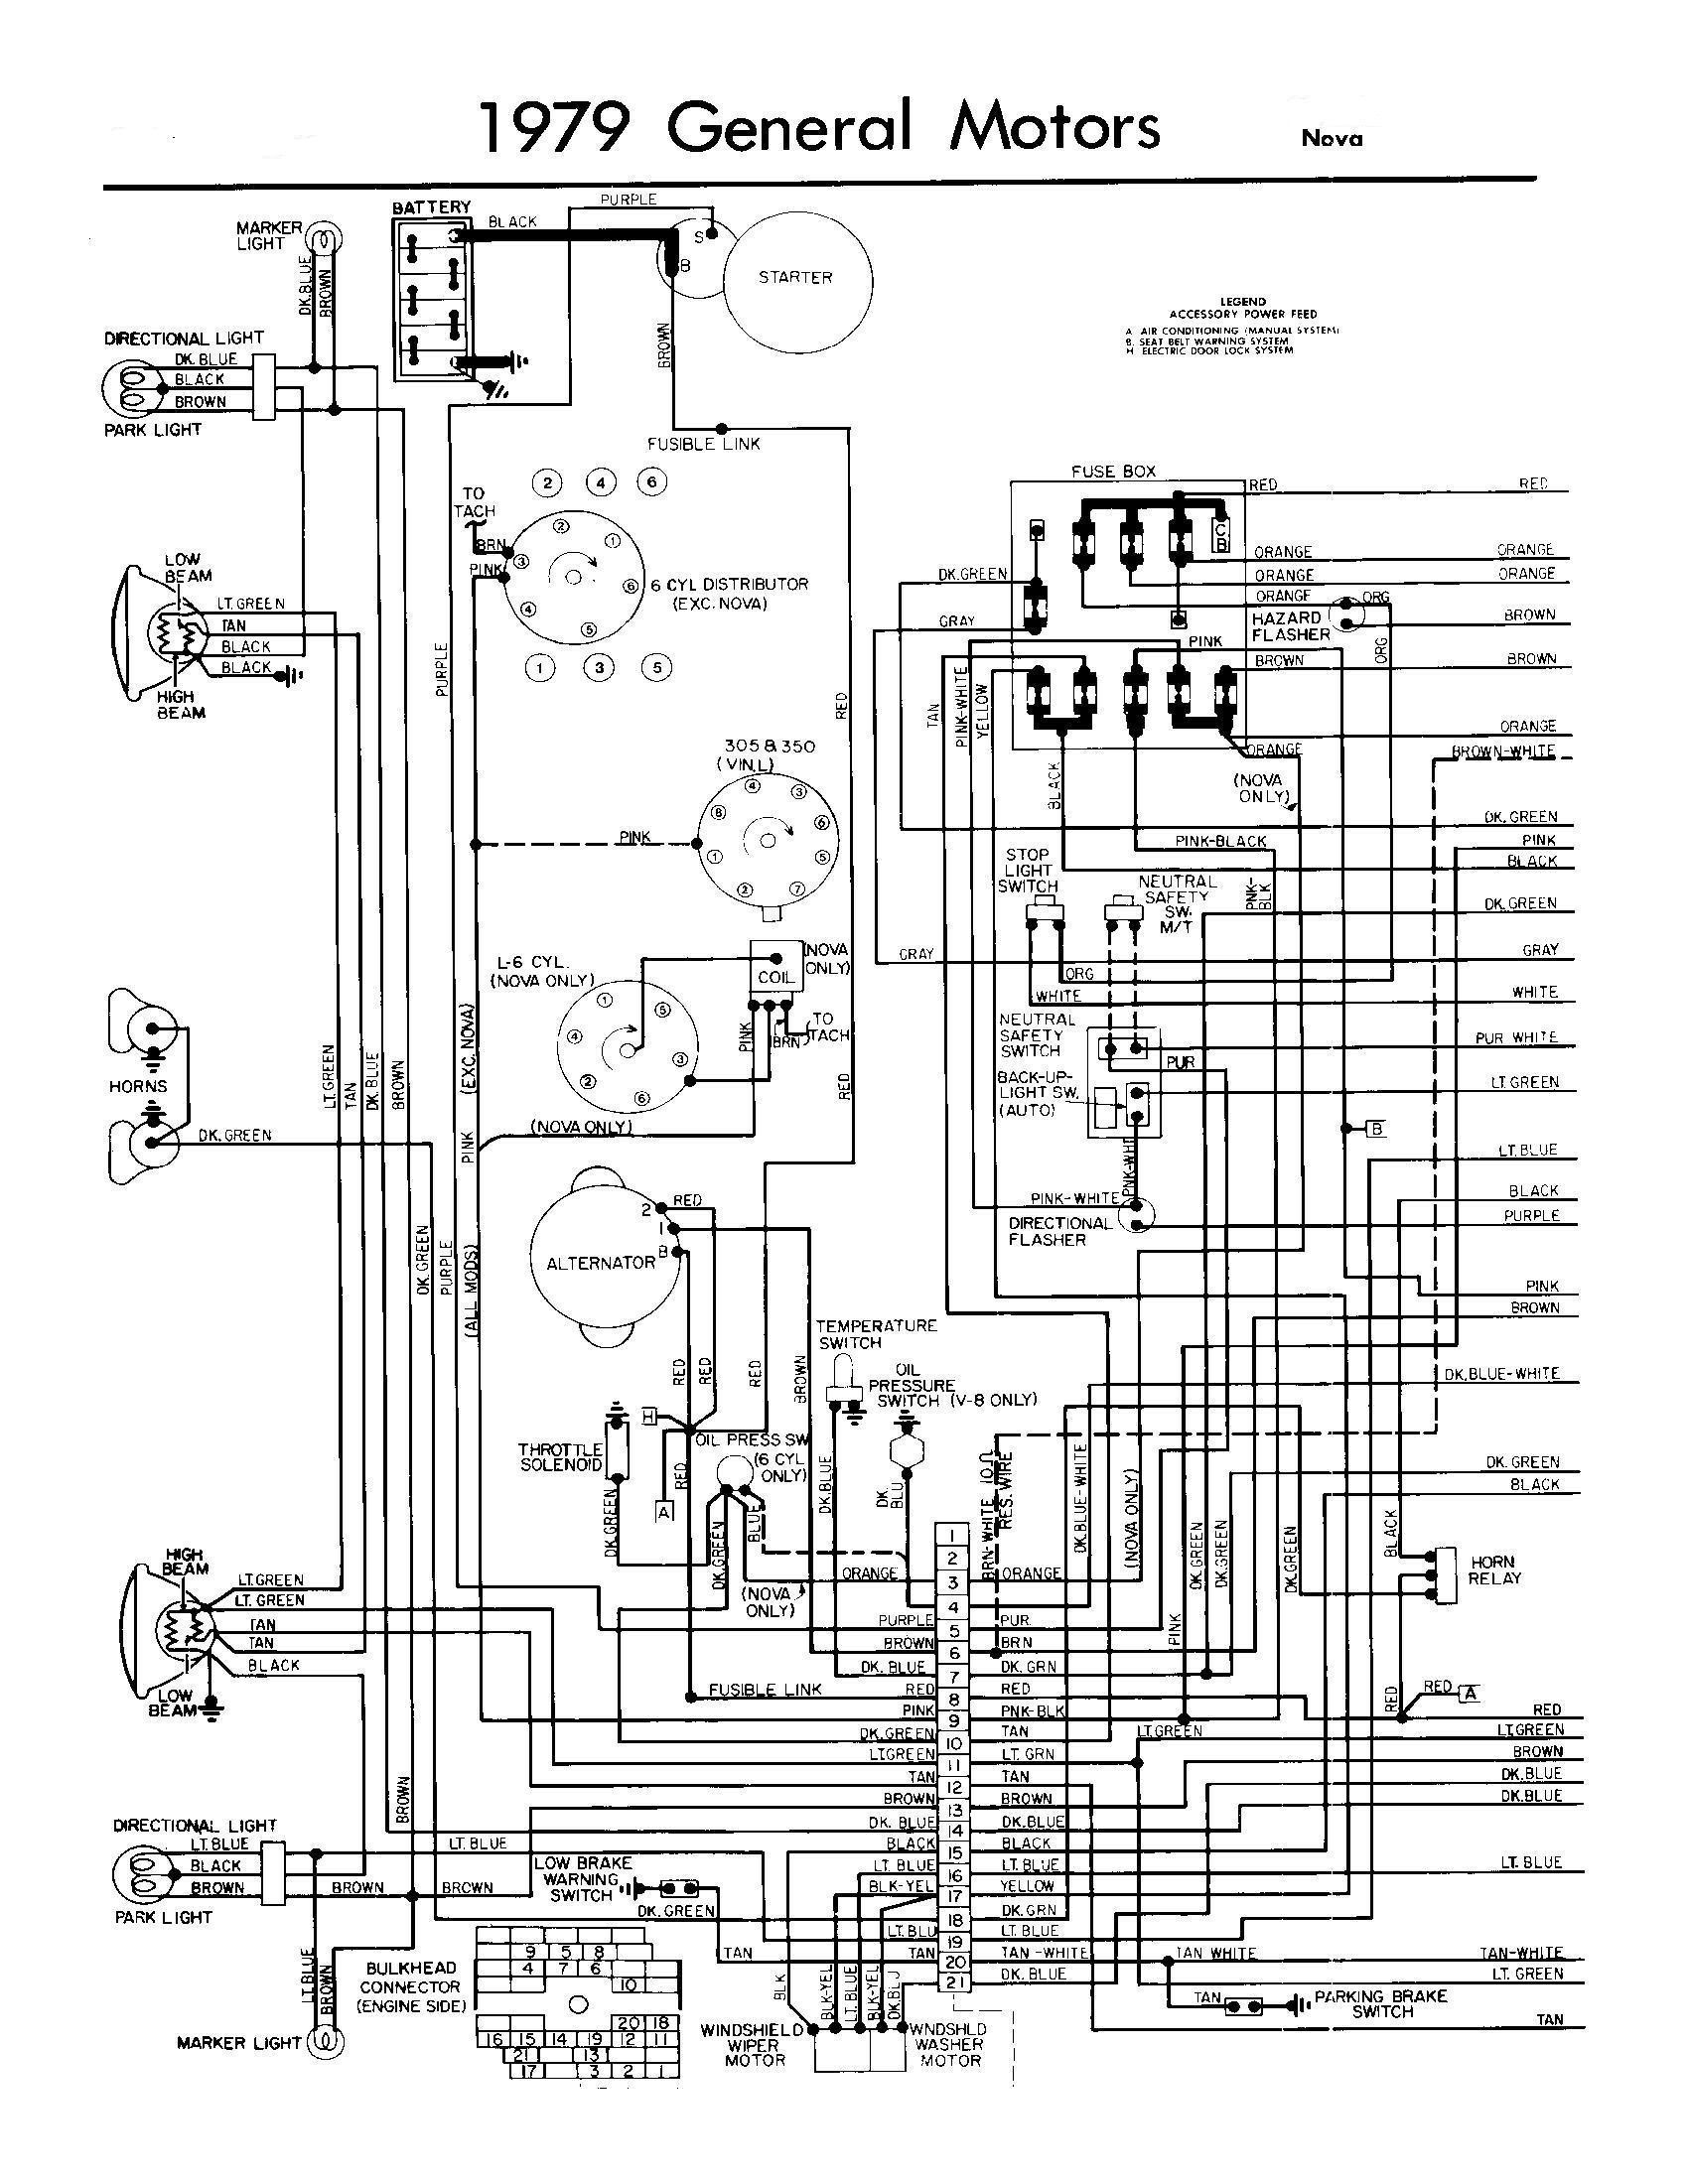 Ford Truck Parts Diagram All Generation Wiring Schematics Chevy Nova forum Of Ford Truck Parts Diagram